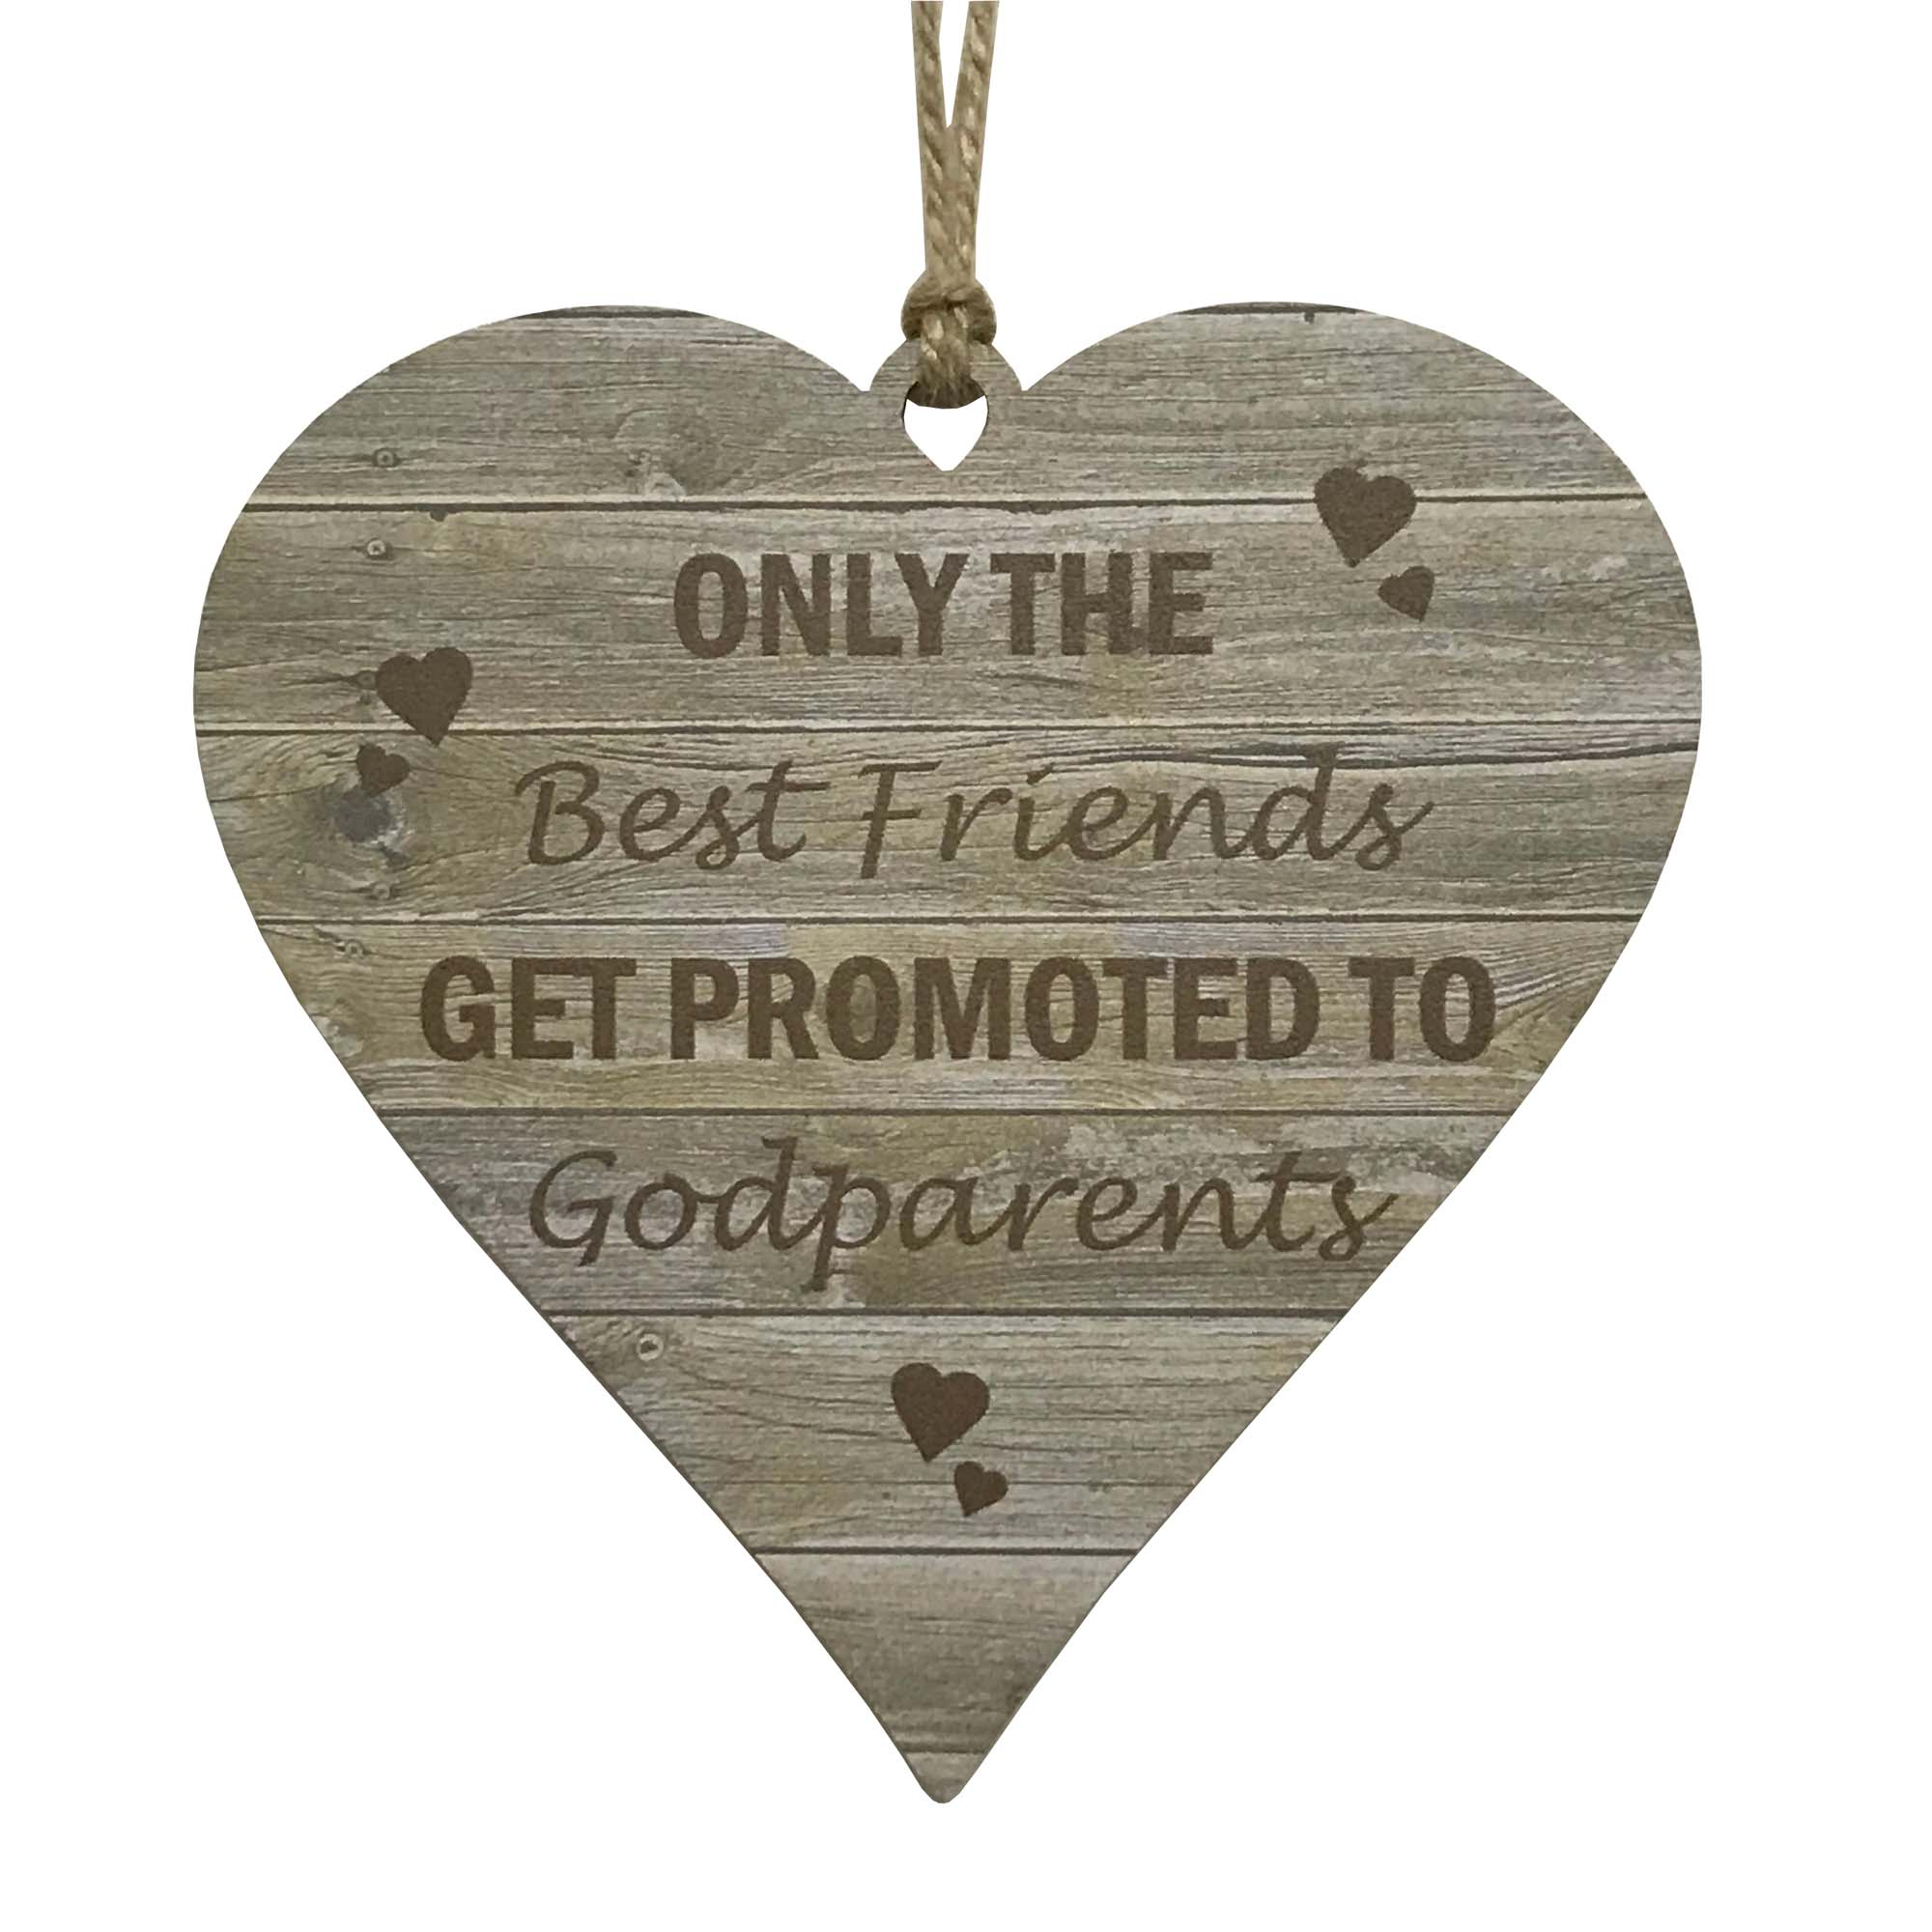 Godparent Gifts Only The Best Friends Get Promoted Christening Godparents Heart